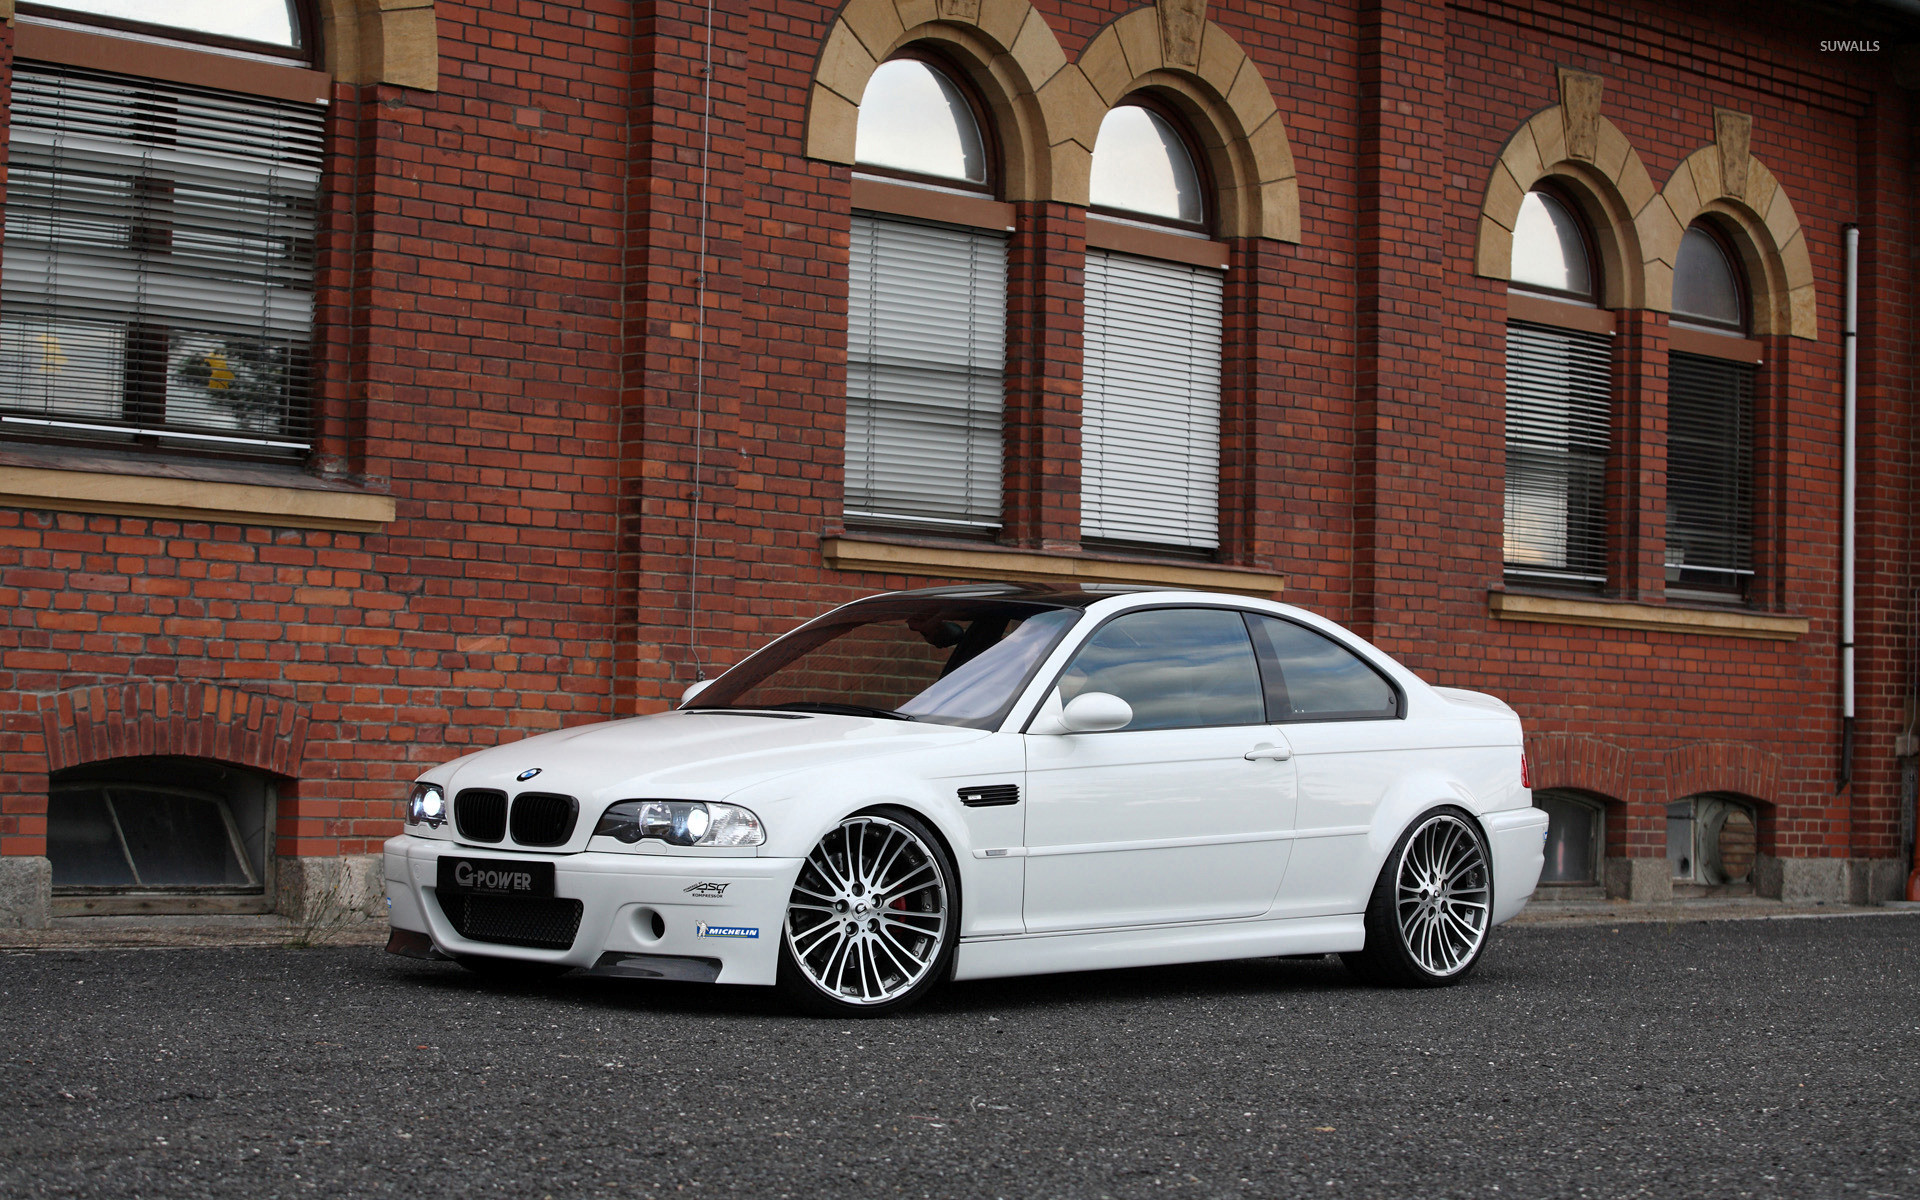 1920x1200 Bmw E46 M3 White - wallpaper.